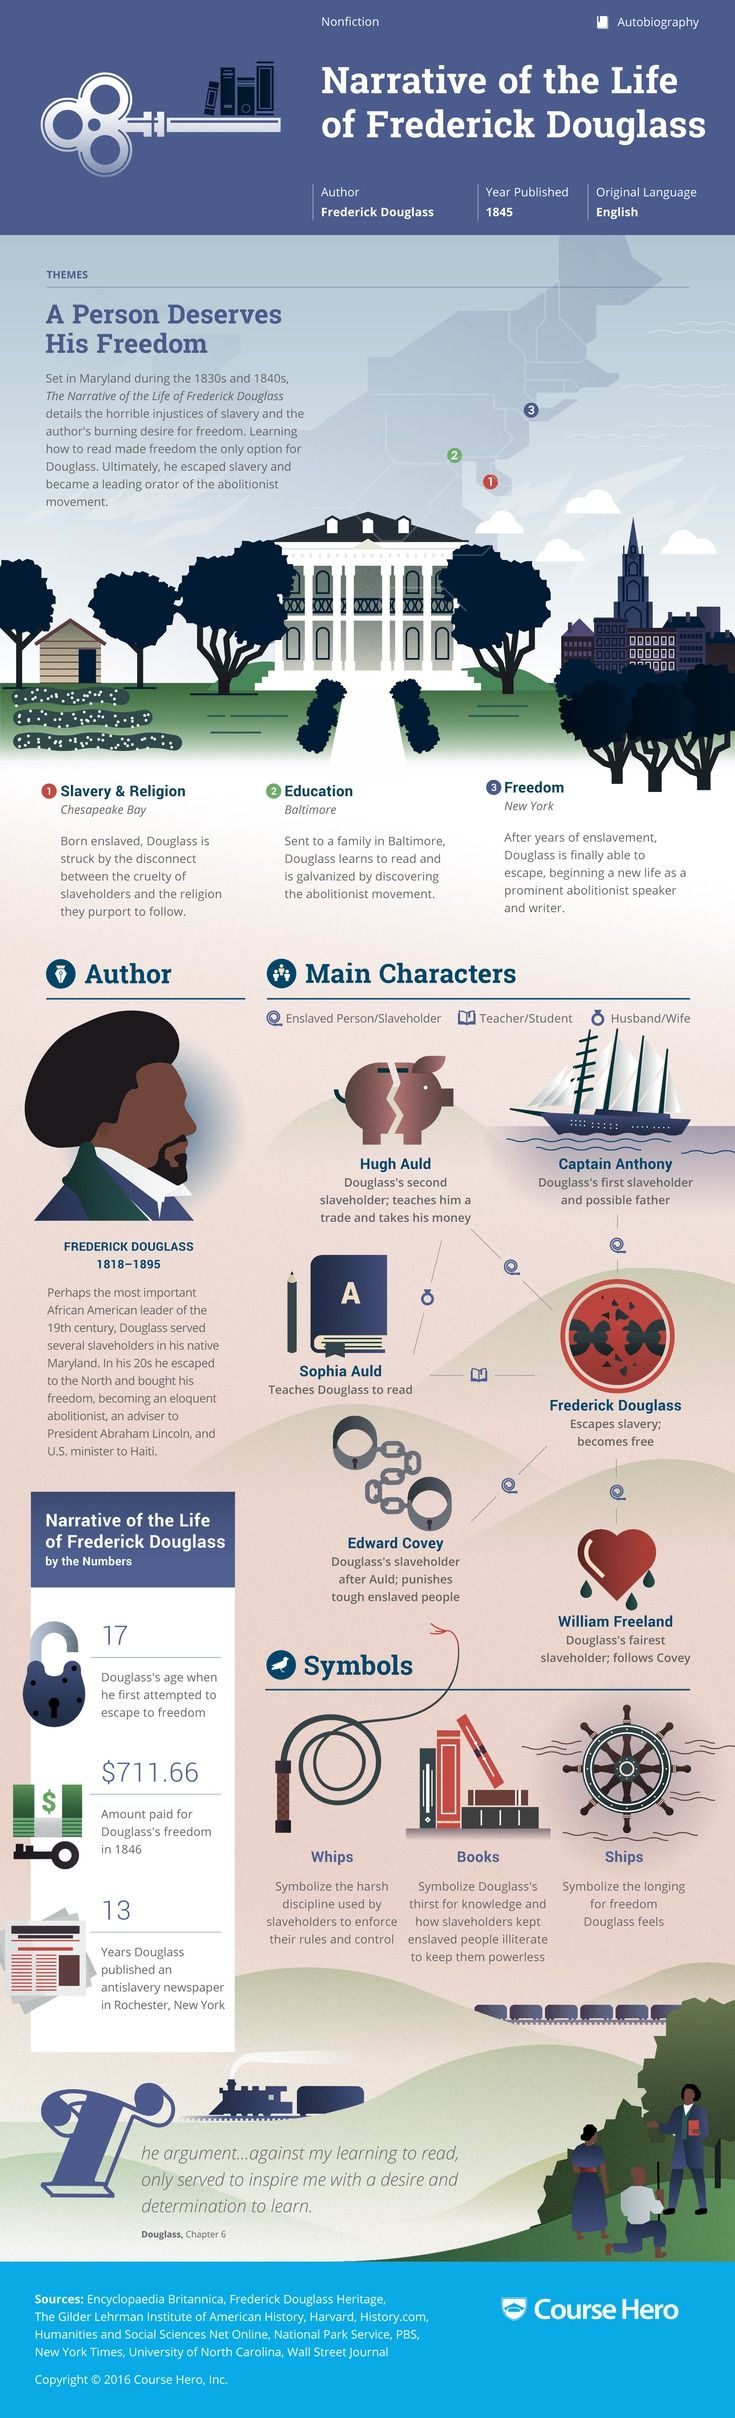 This 'Narrative of the Life of Frederick Douglass' infographic from Course Hero is as awesome as it is helpful. Check it out!